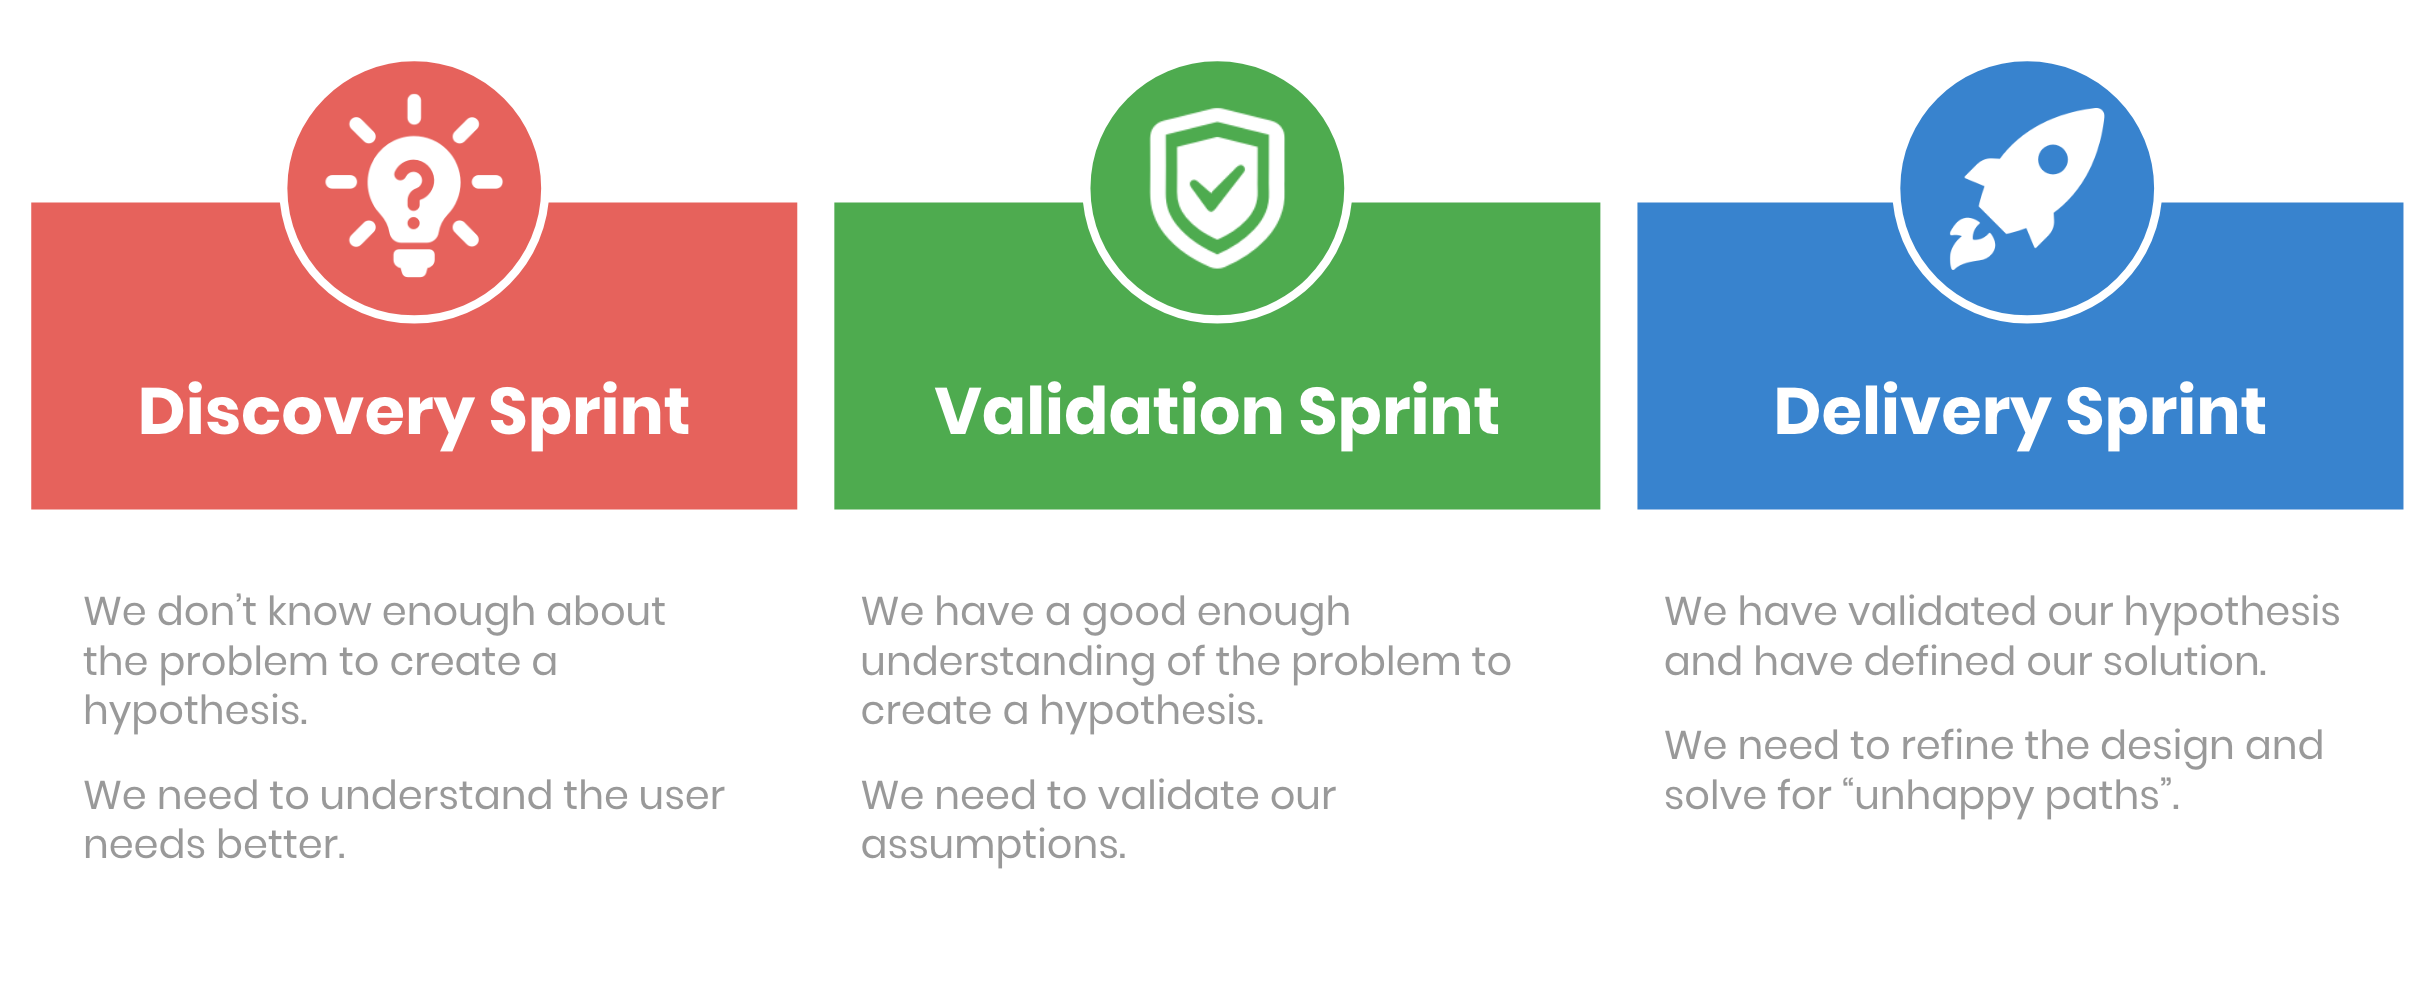 Image showing the three different design sprints at Just Eat, discovery, validation and delivery sprint